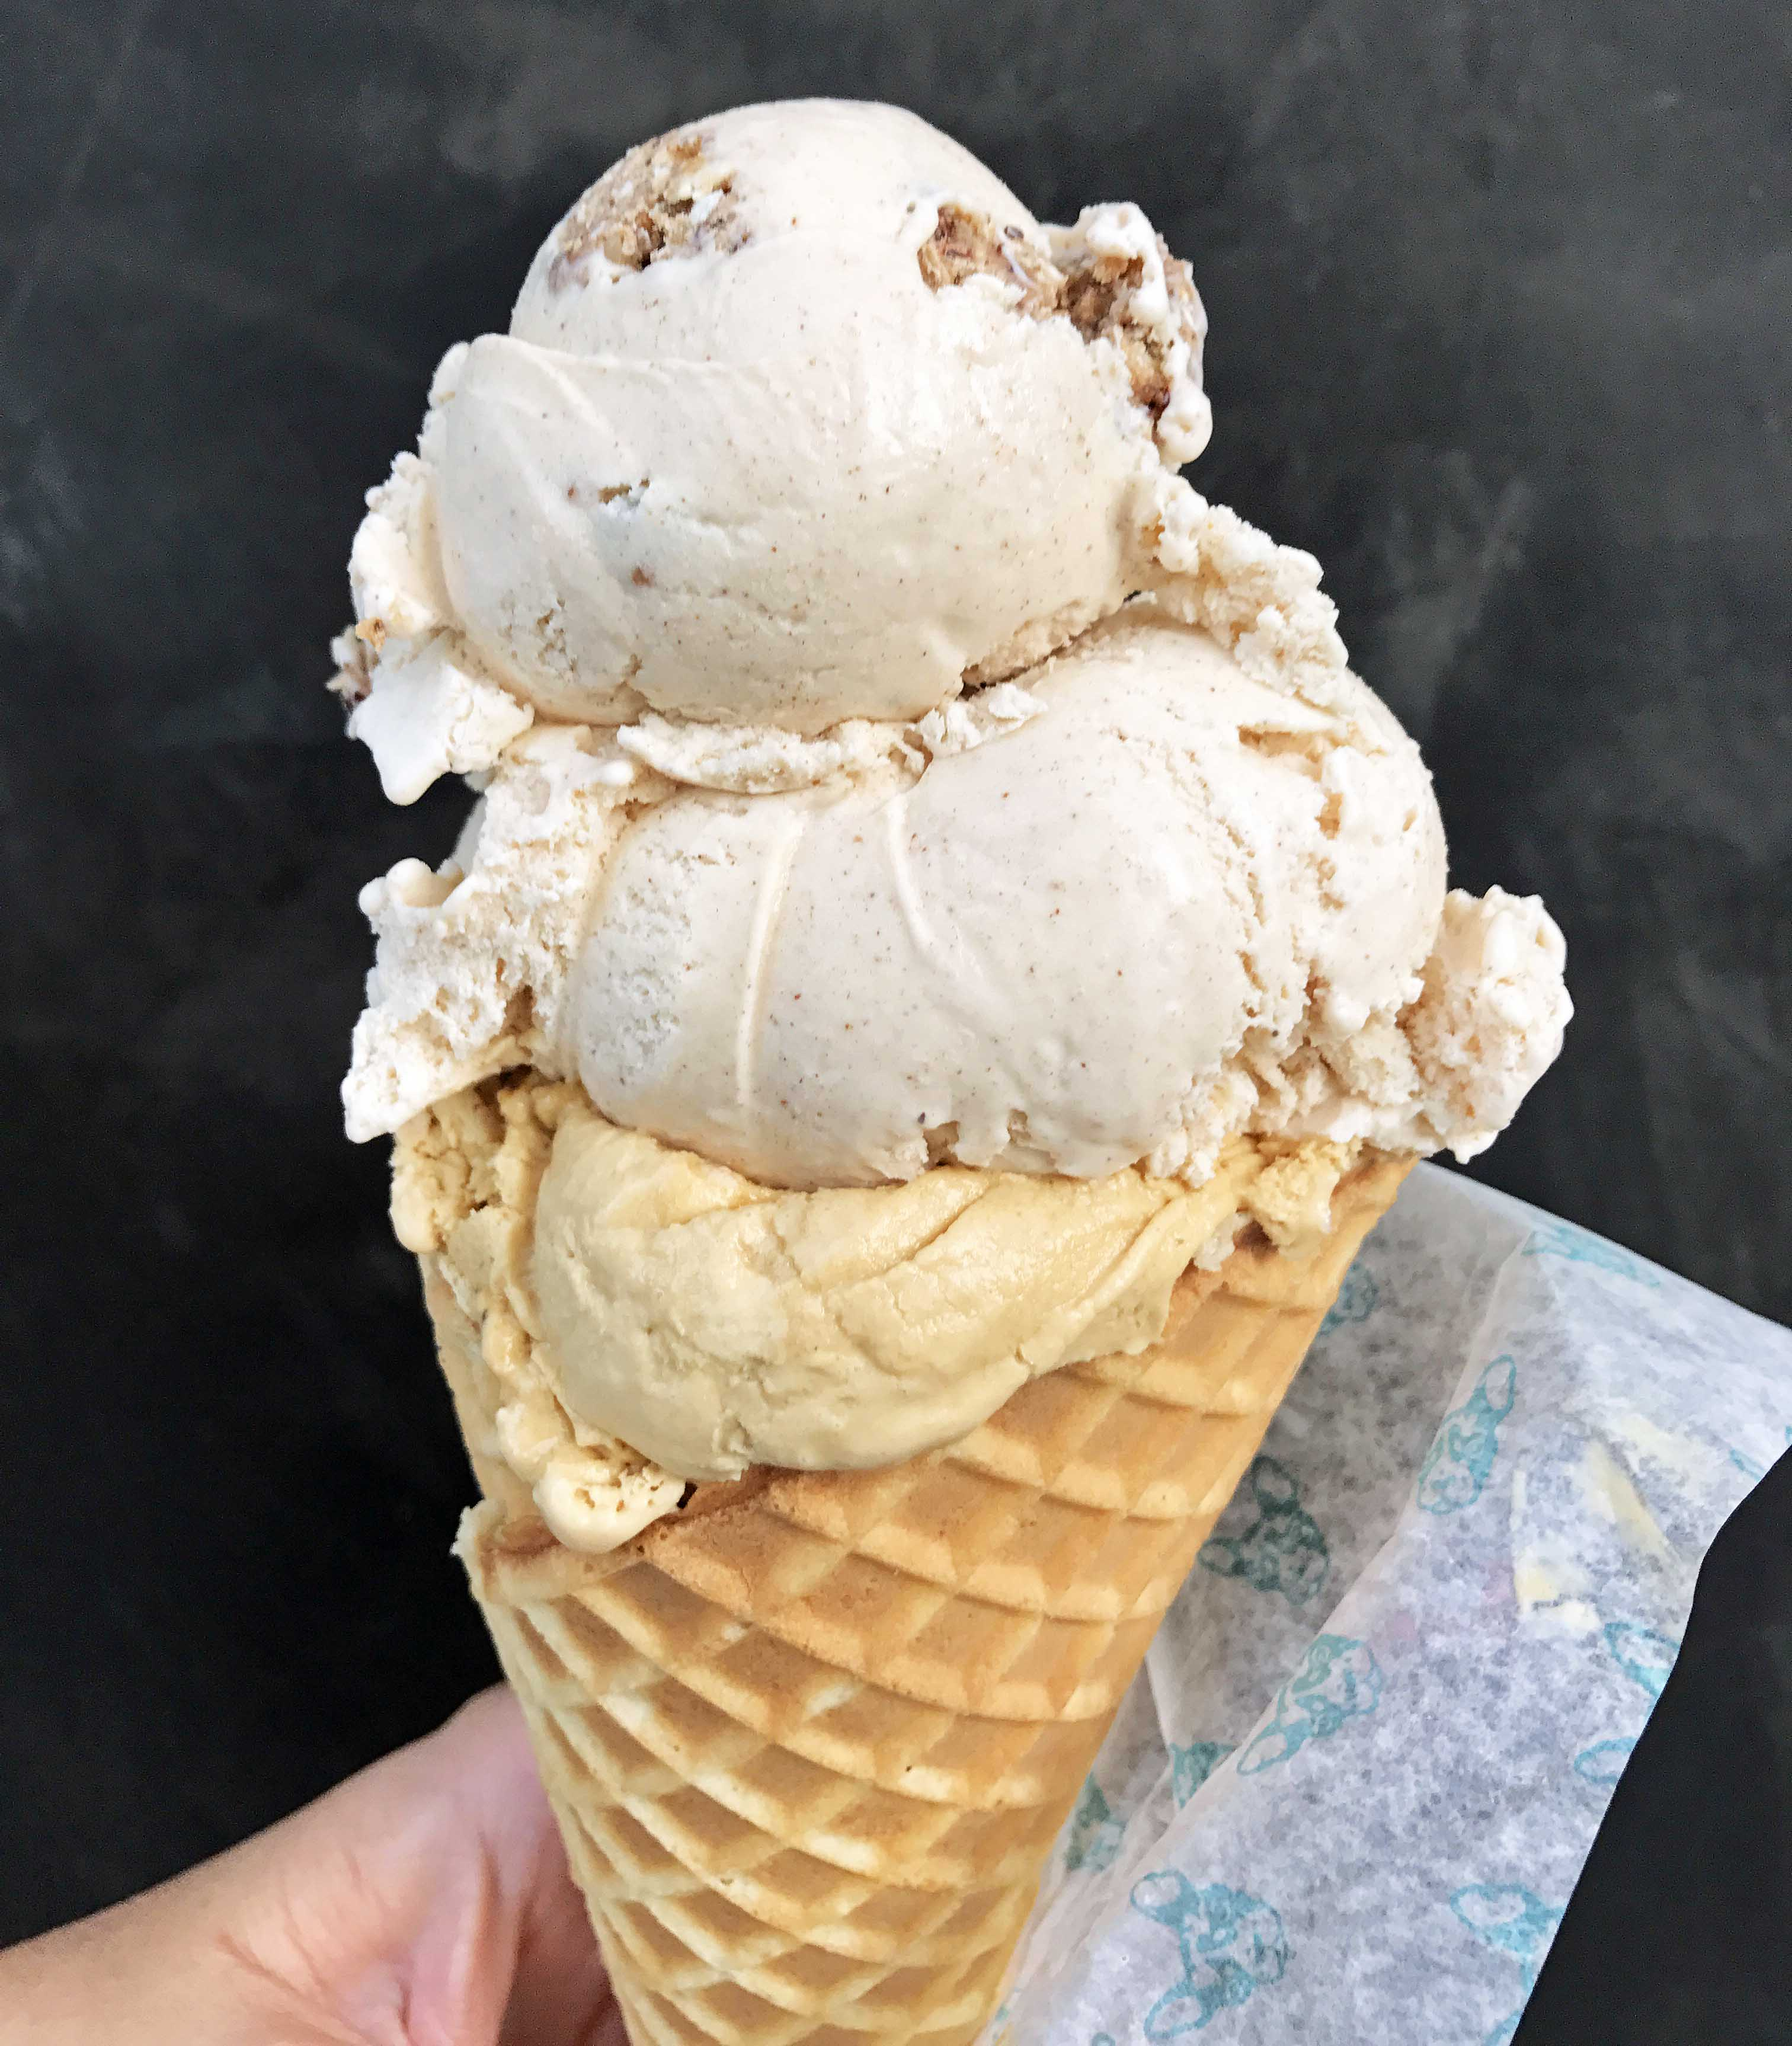 Molly Moon's Homemade Ice Cream. Best Places to Eat and See in Seattle. The most popular spots to visit and the best restaurants. Tips on the best places to see in Seattle Washington. www.modernhoney.com